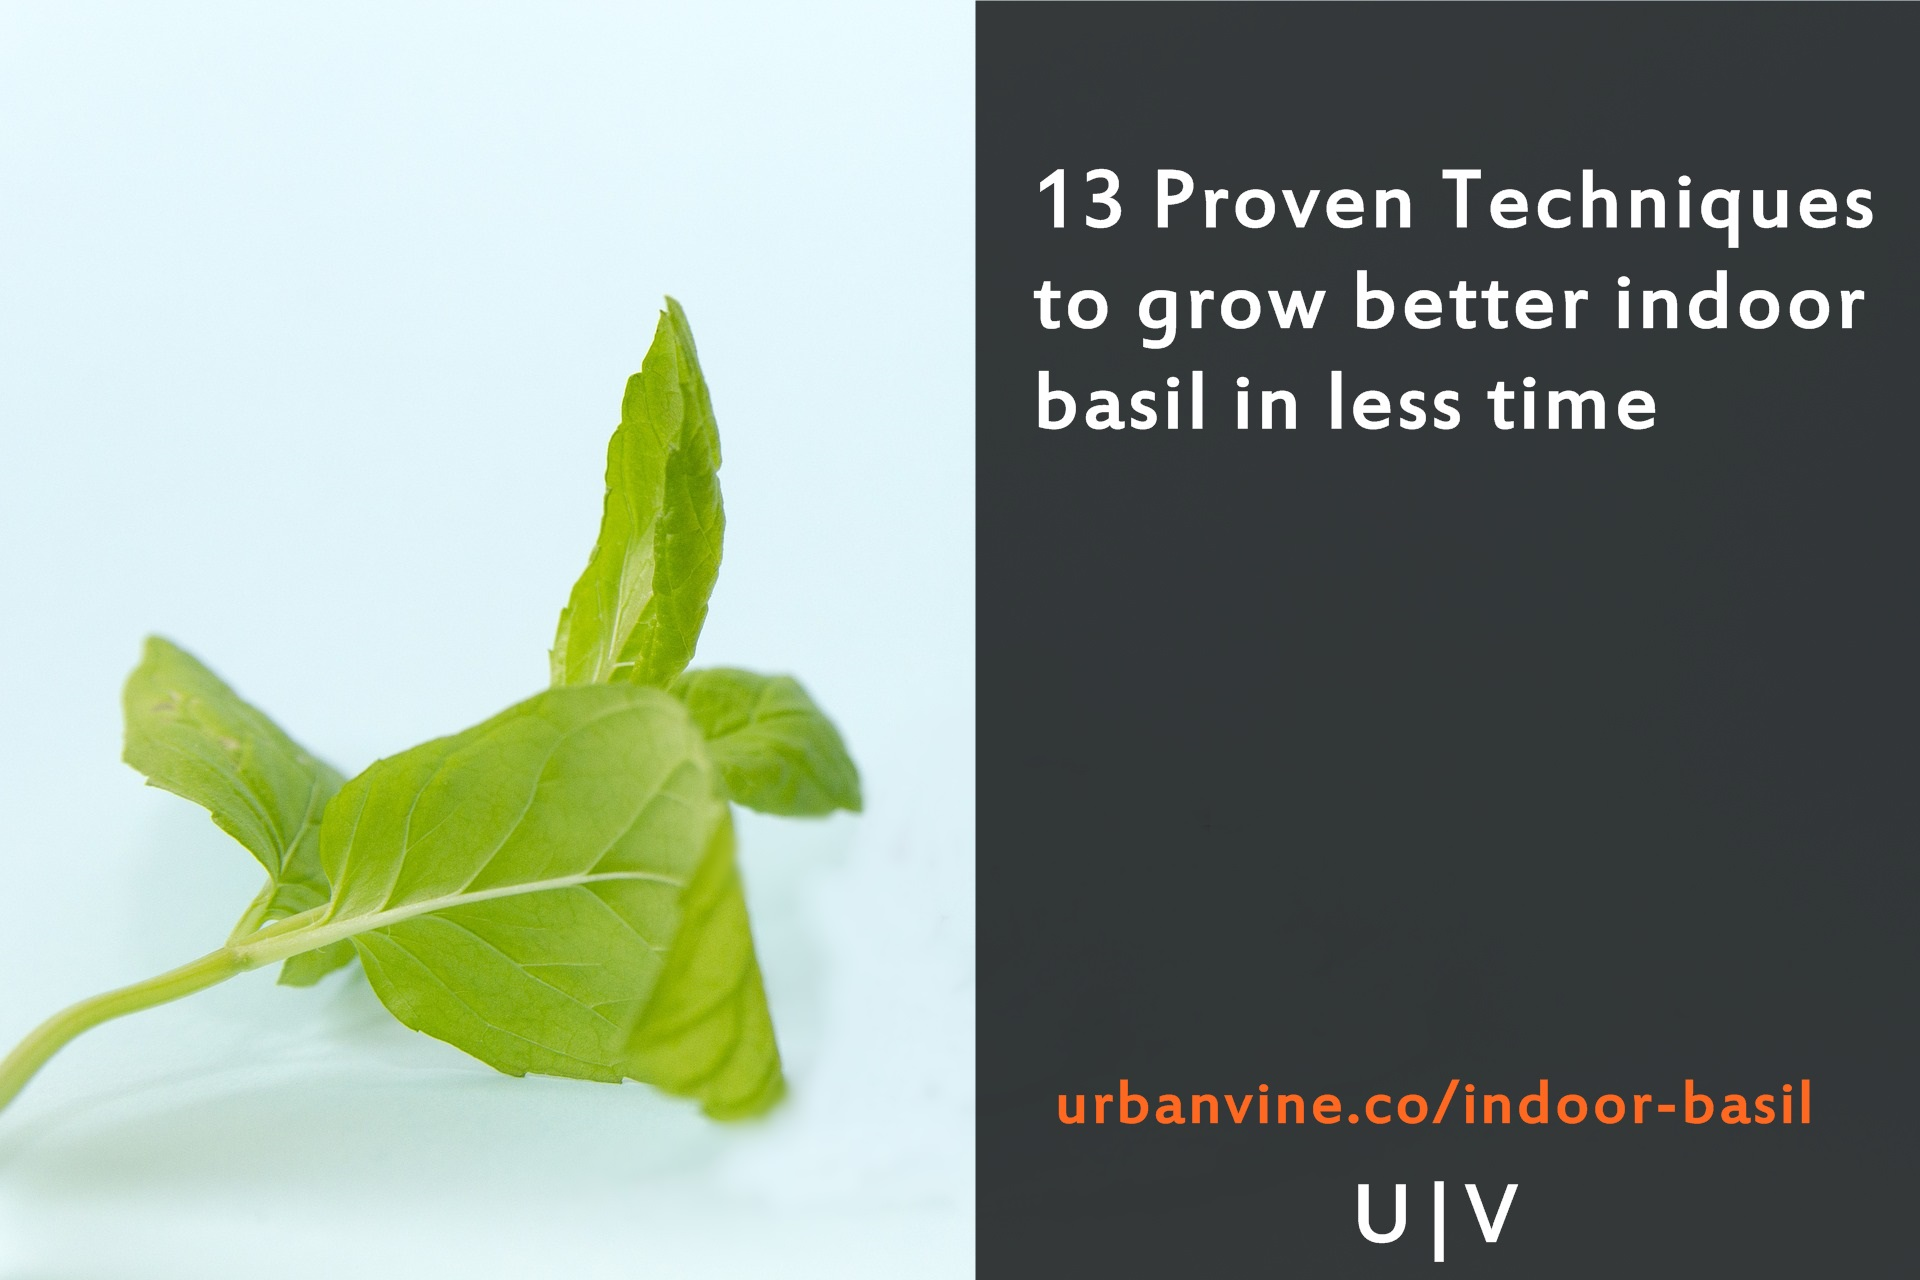 13 Proven Techniques to grow better indoor basil in less time